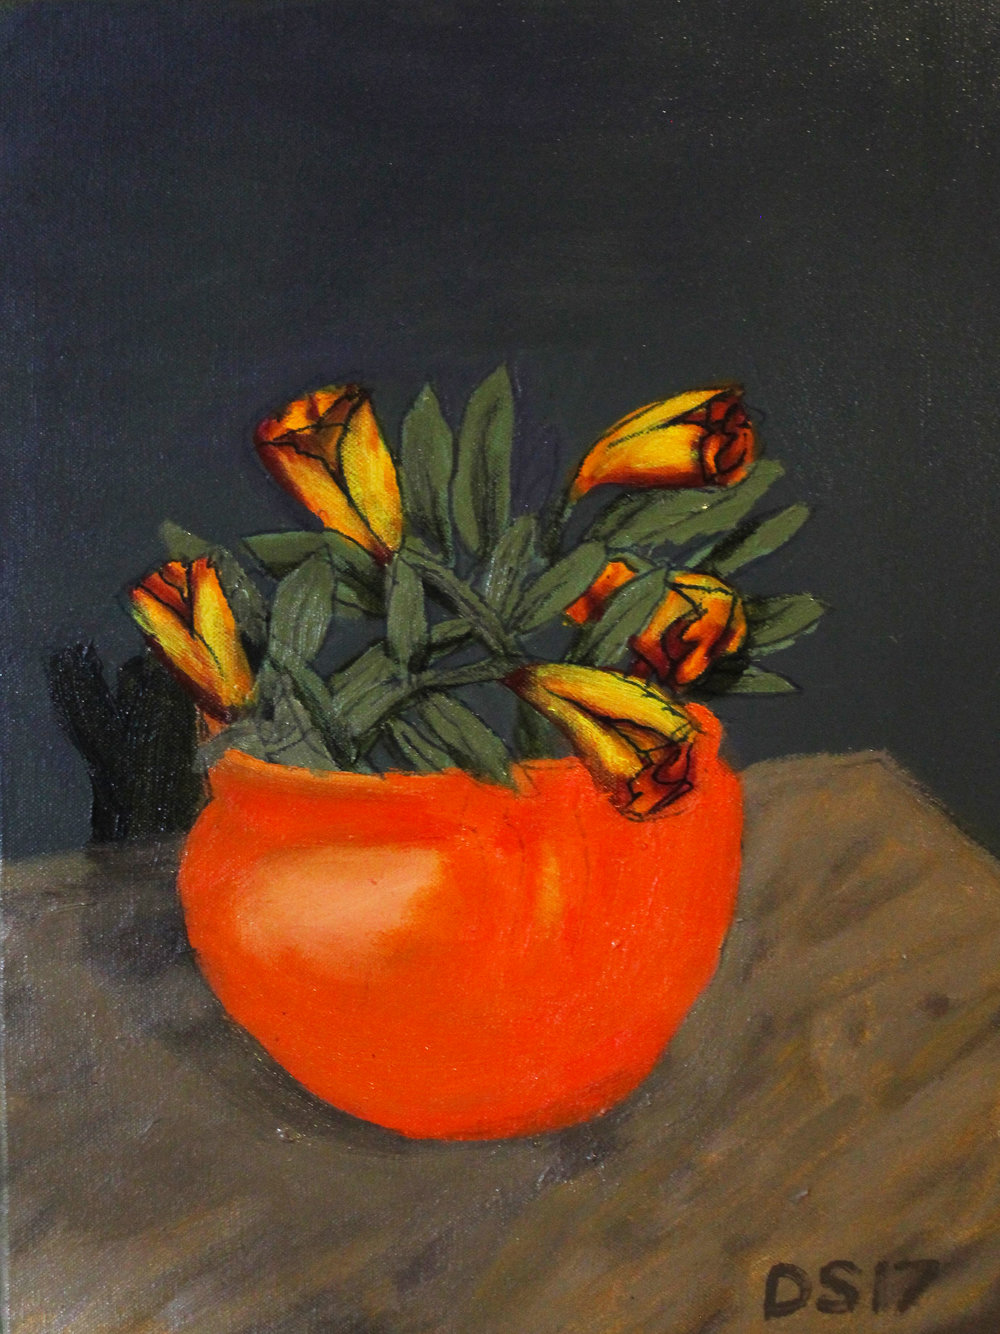 Damien Skipper, Yellow and Maroon, oil on canvas